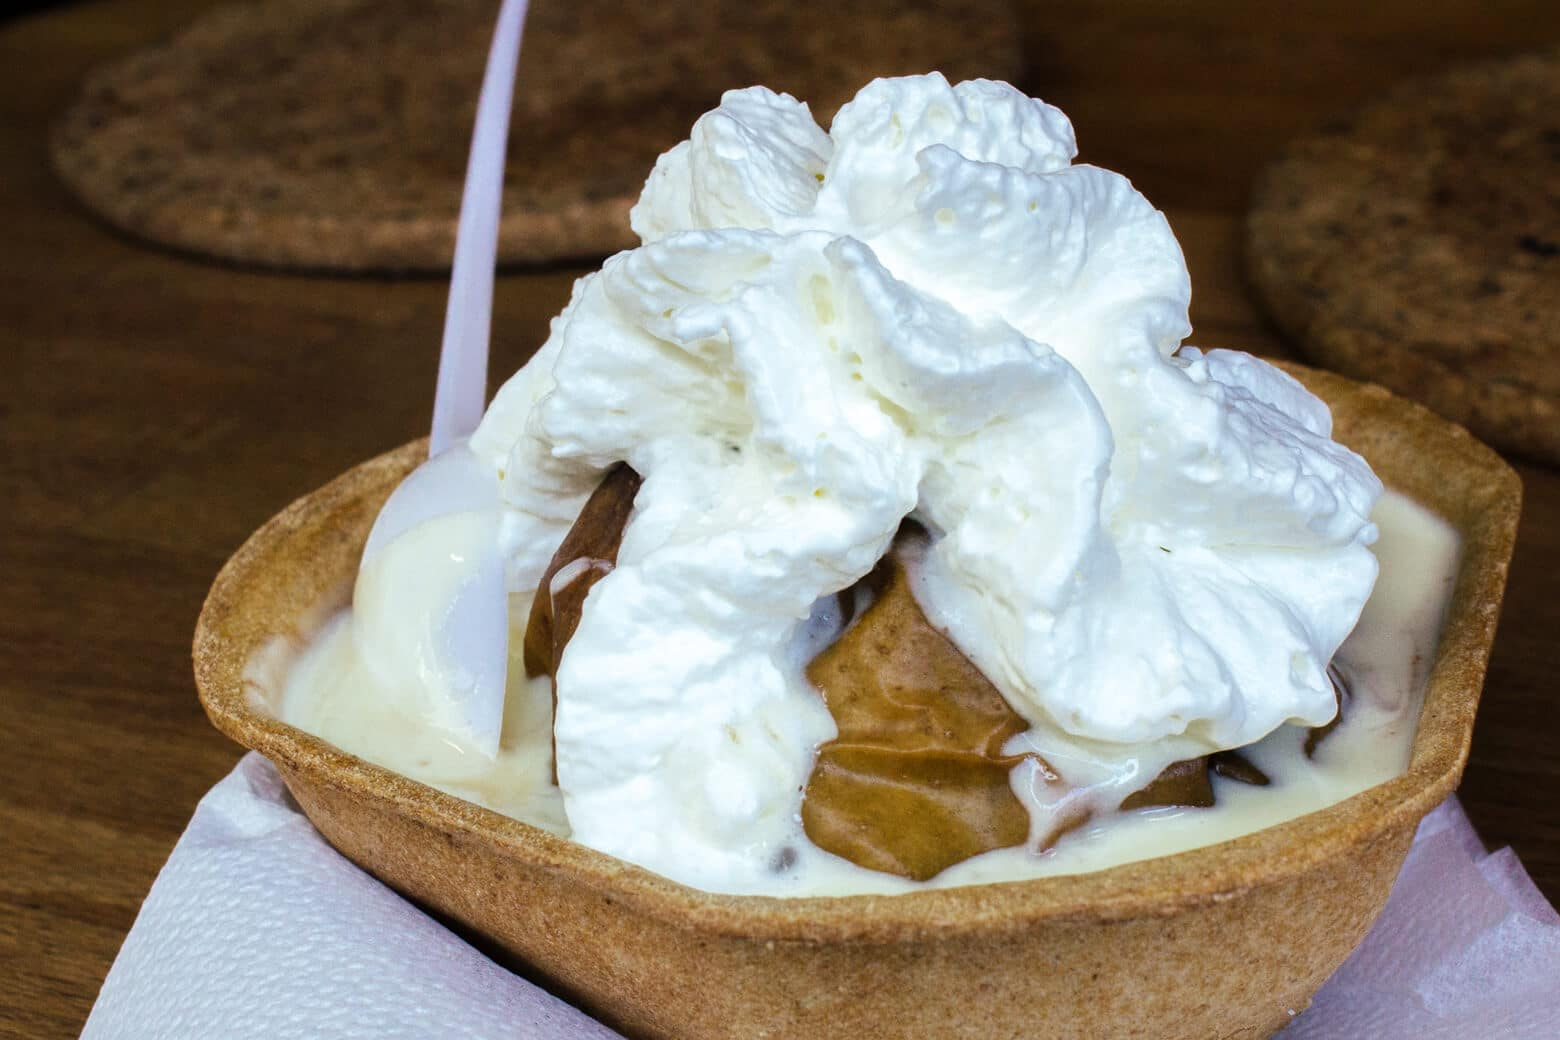 Baked Apples with Whipped Cream